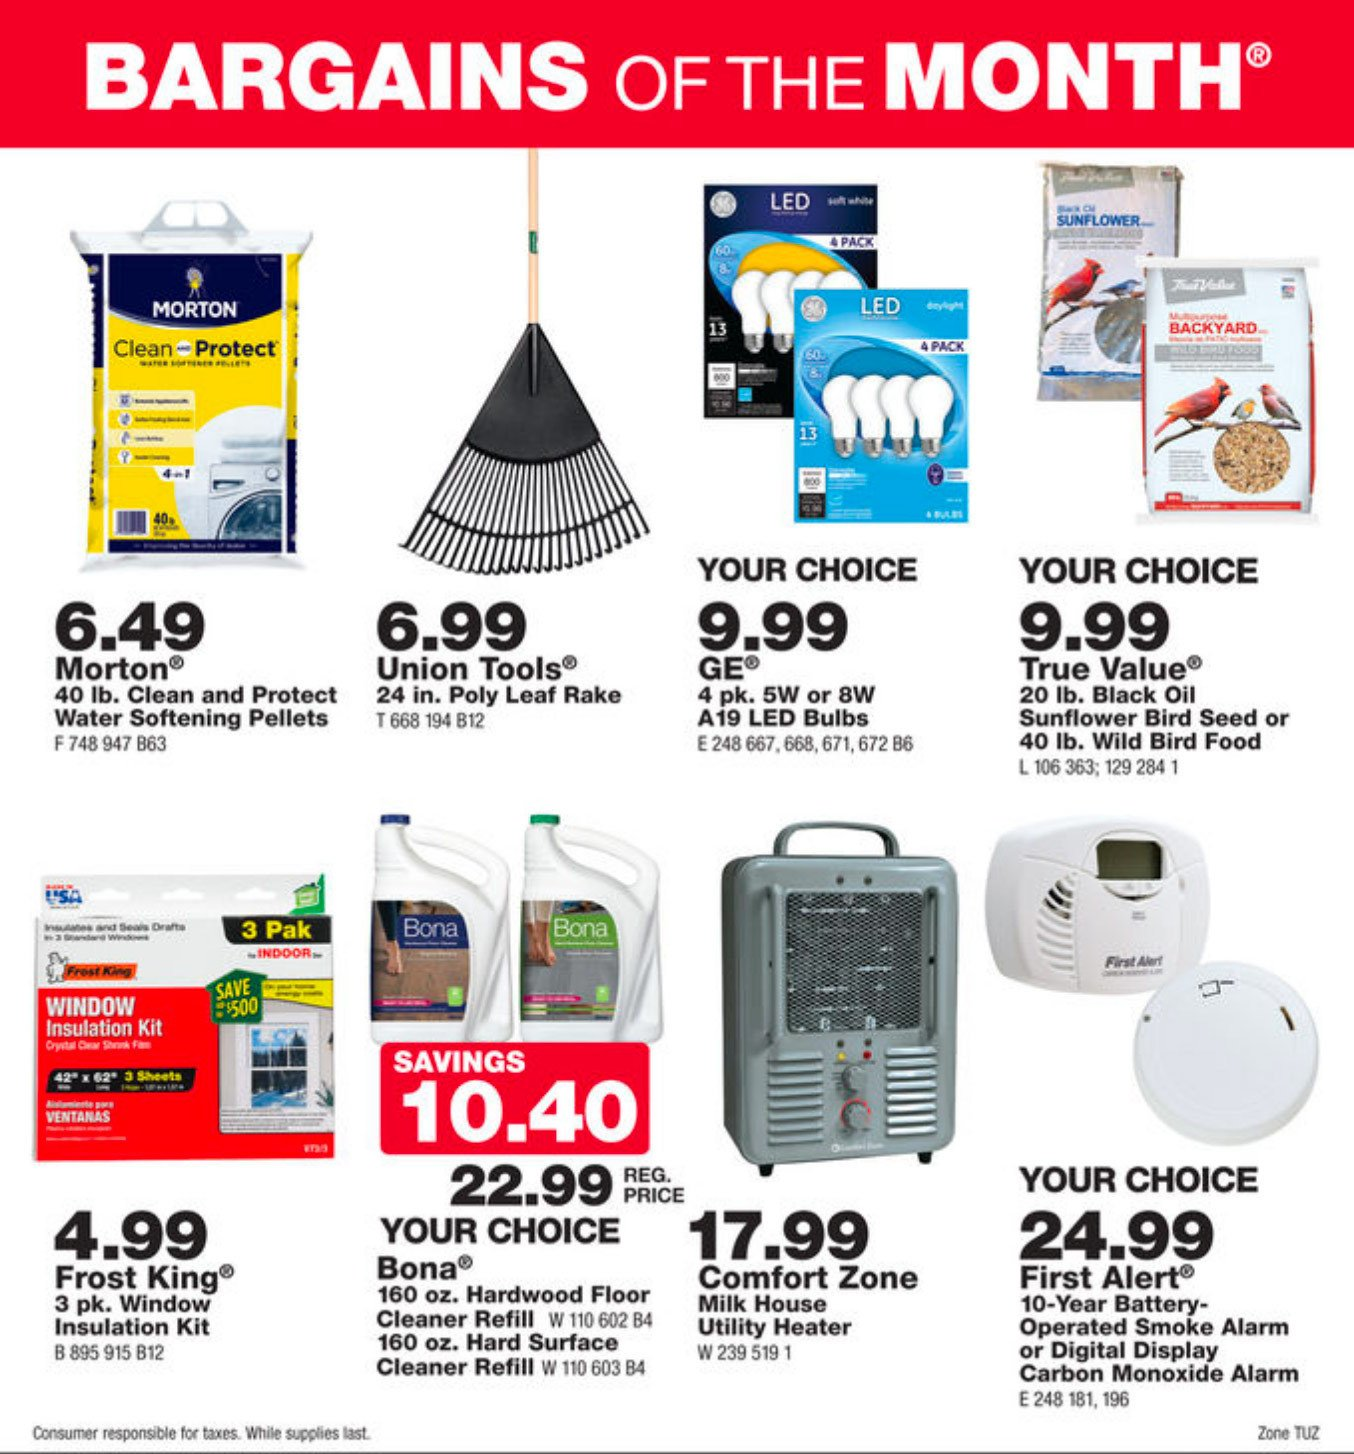 October Bargains of the Month